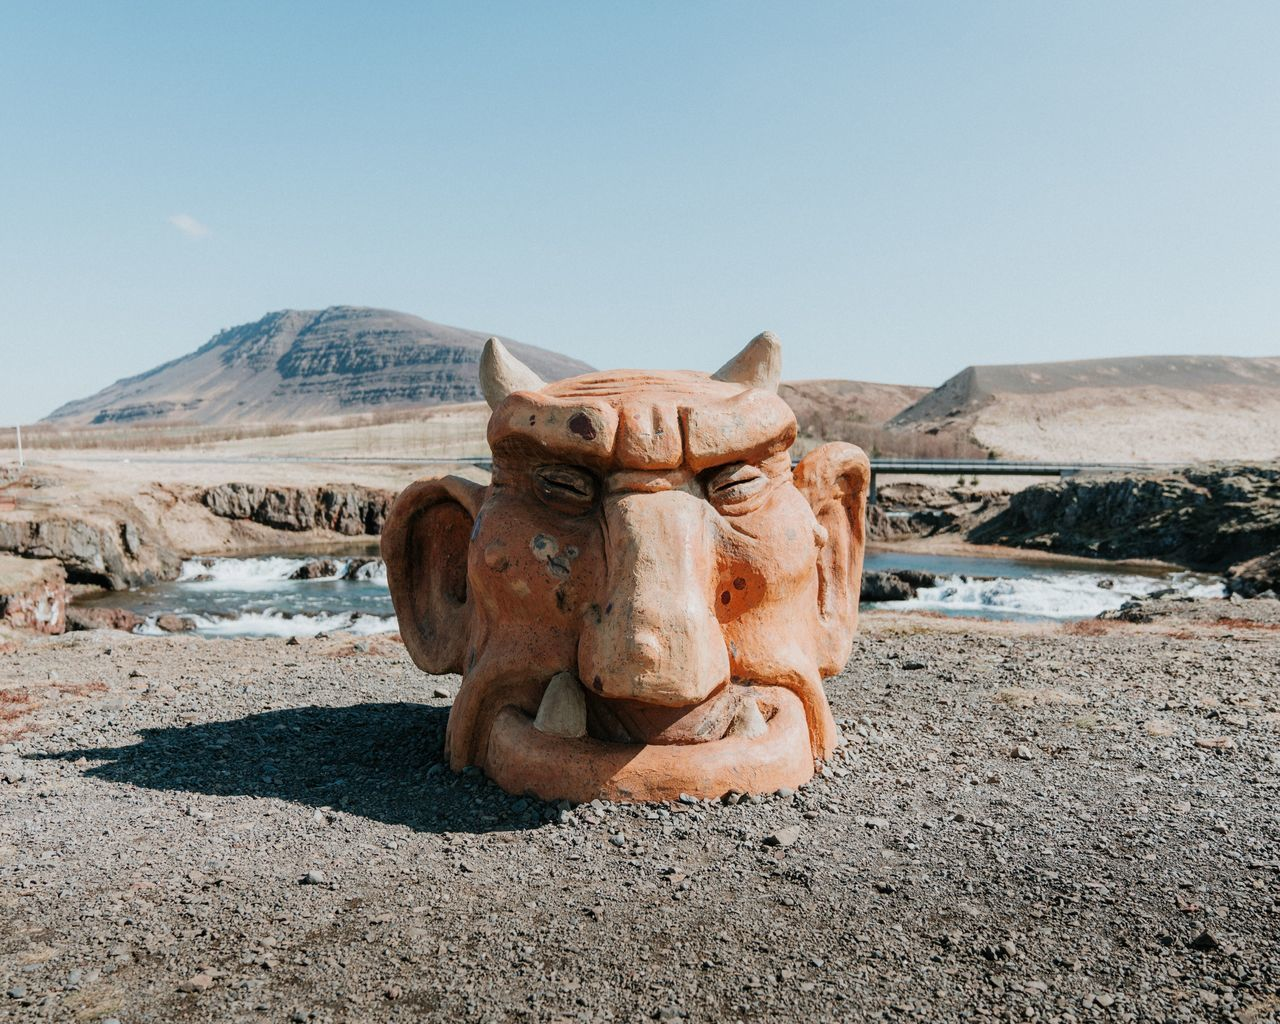 Troll head statue in Iceland No People Day Outdoors Sculpture Mountain Ancient Civilization Troll Iceland Face Folklore Statue Elf Waterfall Mountains